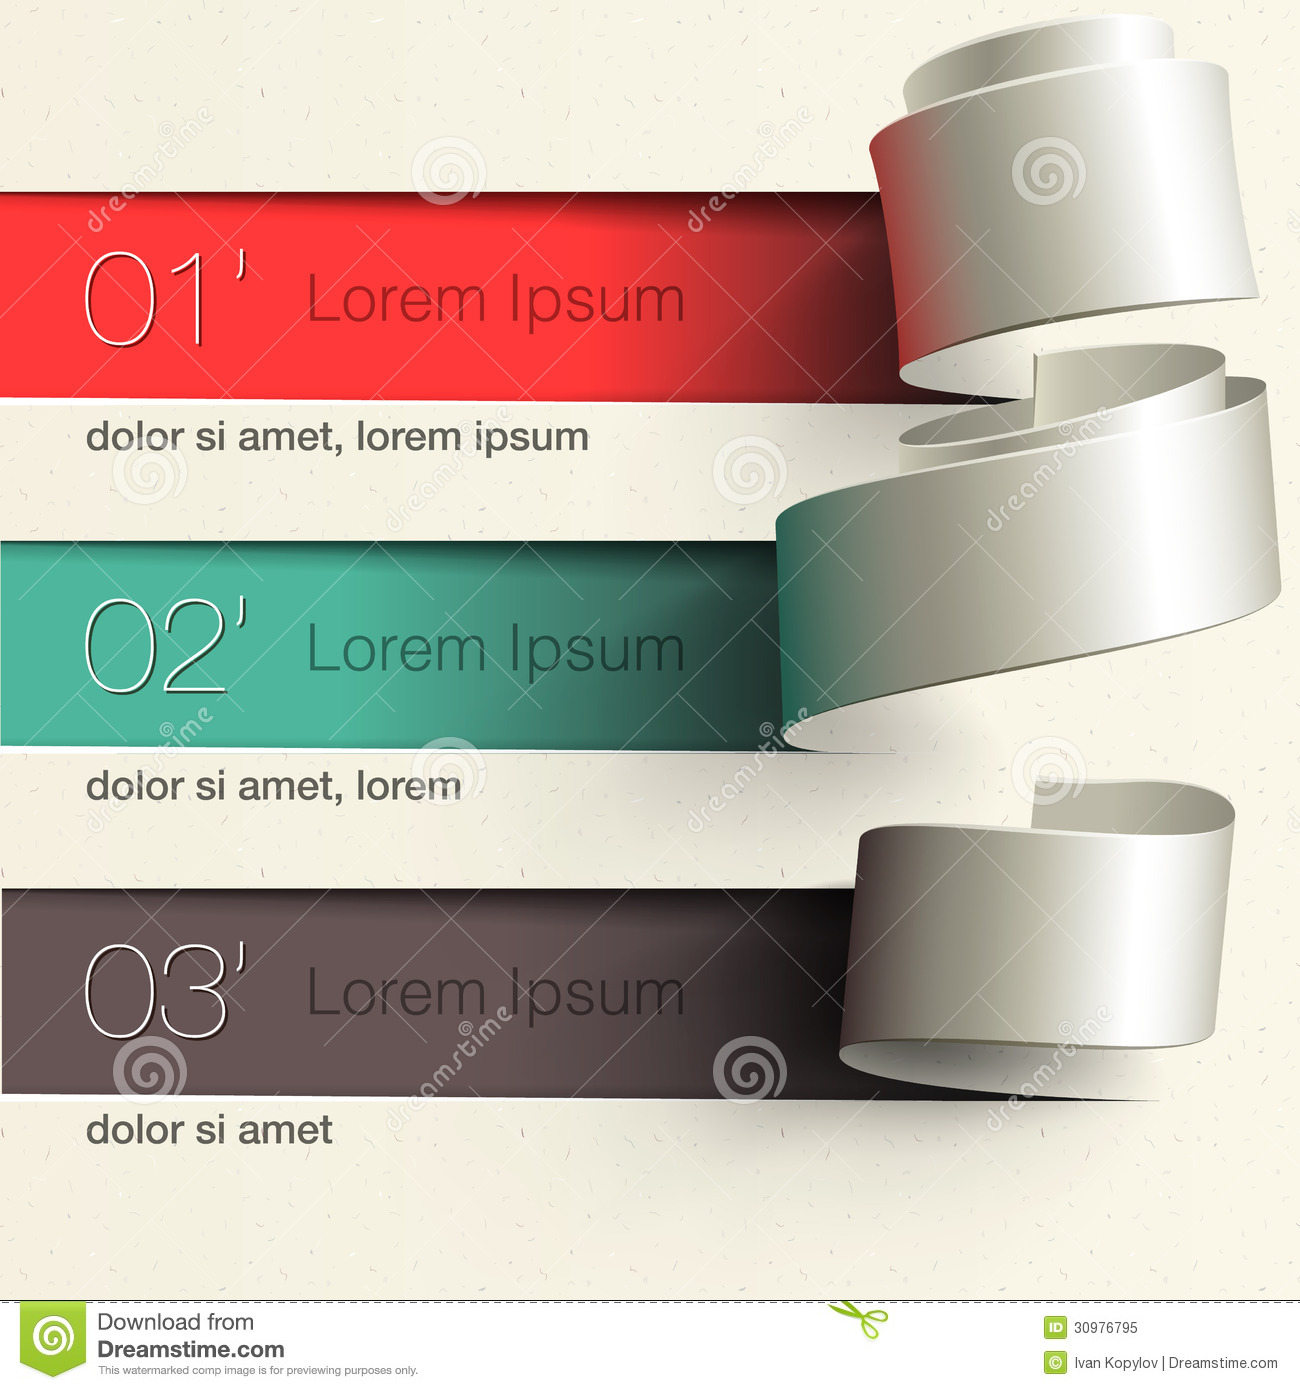 Modern Design Infographic Template Royalty Free Stock ...